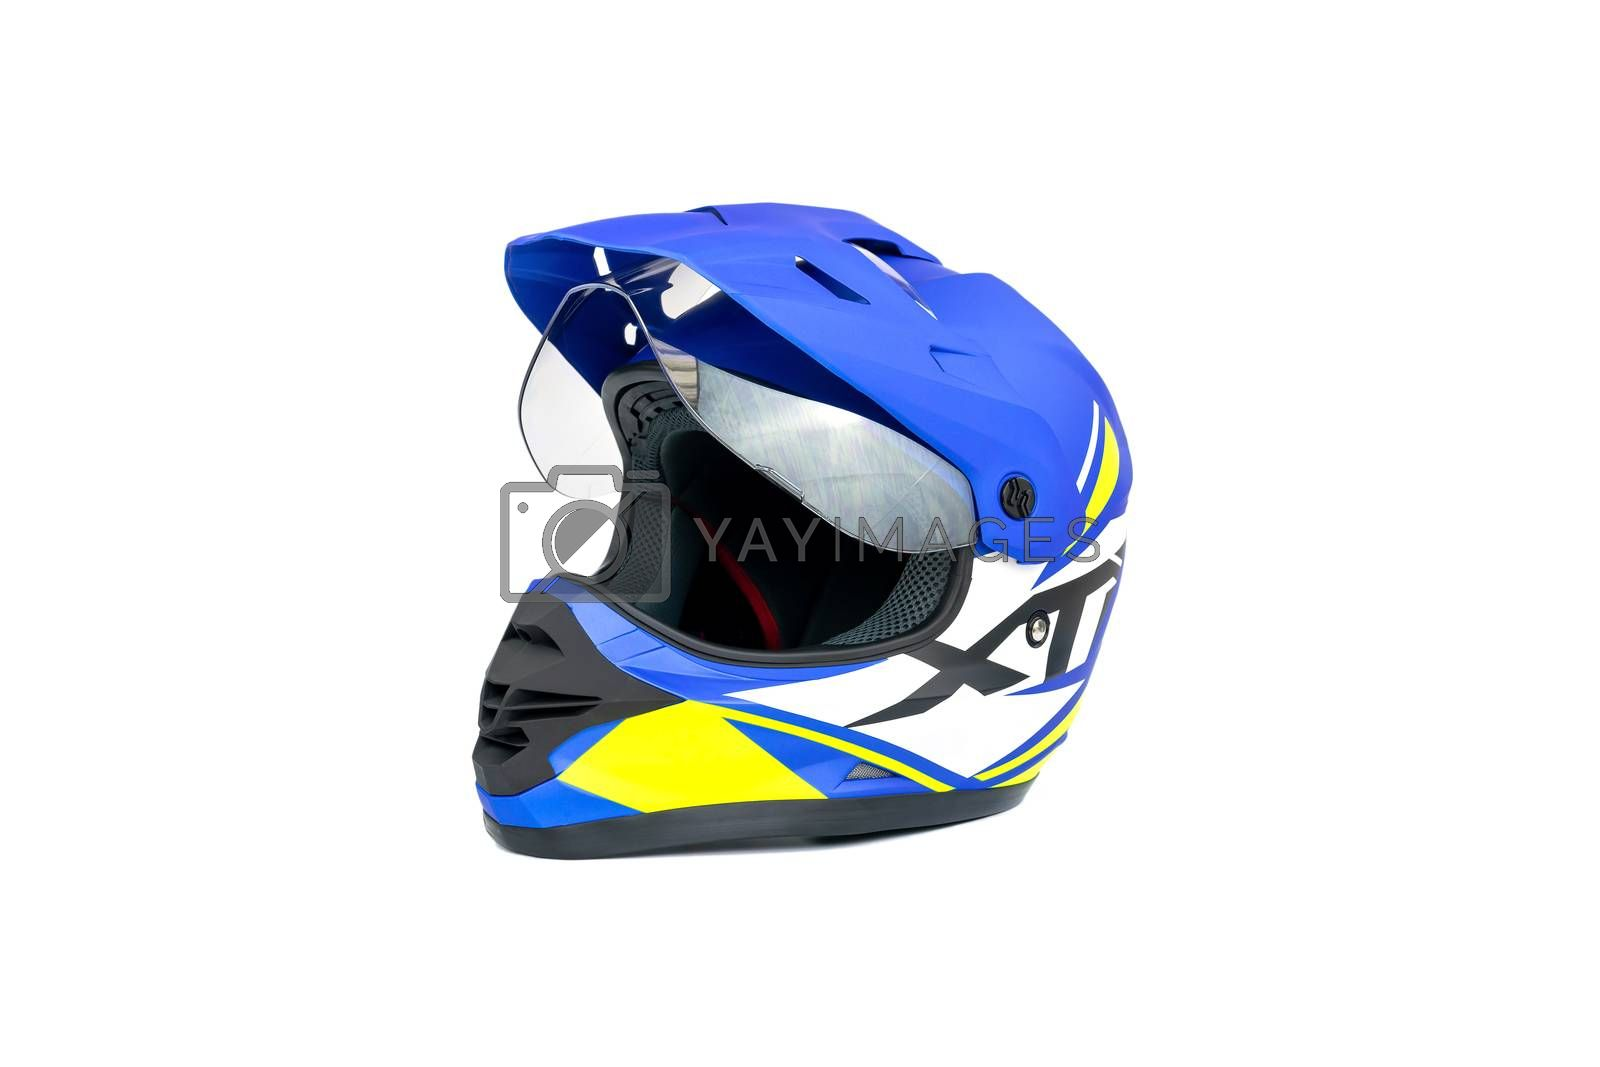 Multi colored motocross helmet isolated on white background.